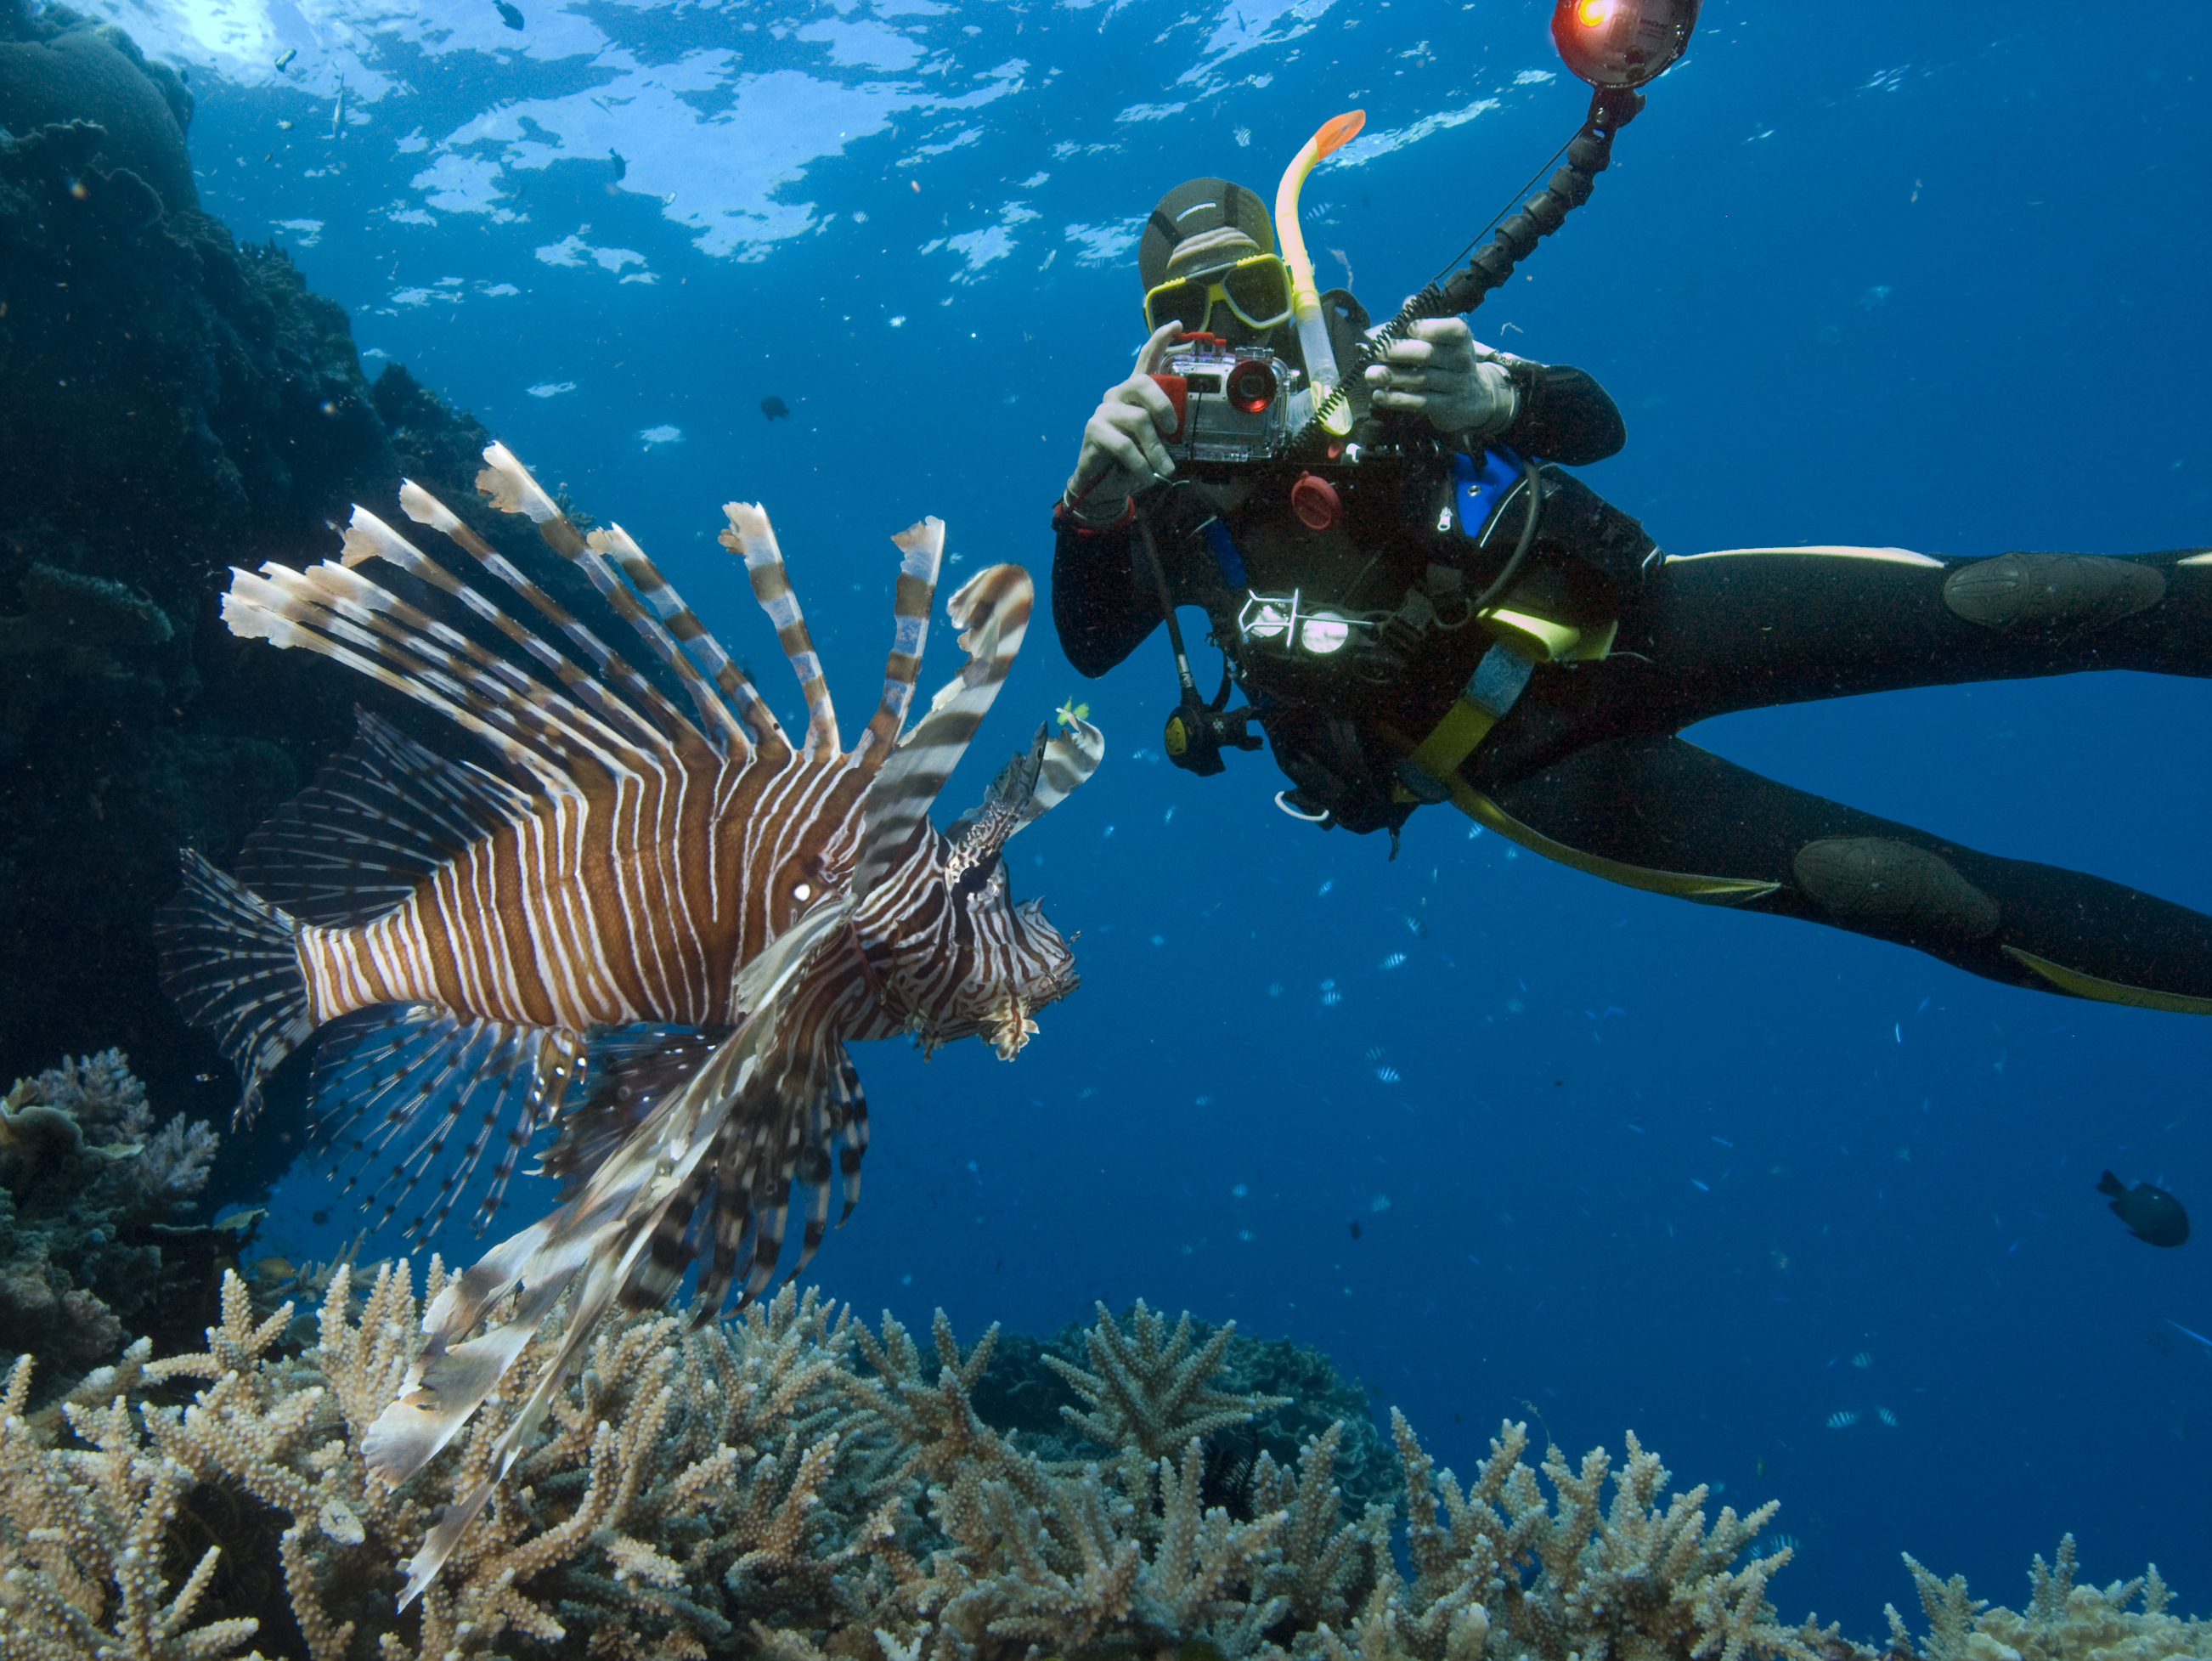 Red Lionfish and Walter Schaerer SCUBA diving on the Great Barrier Reef, Australia